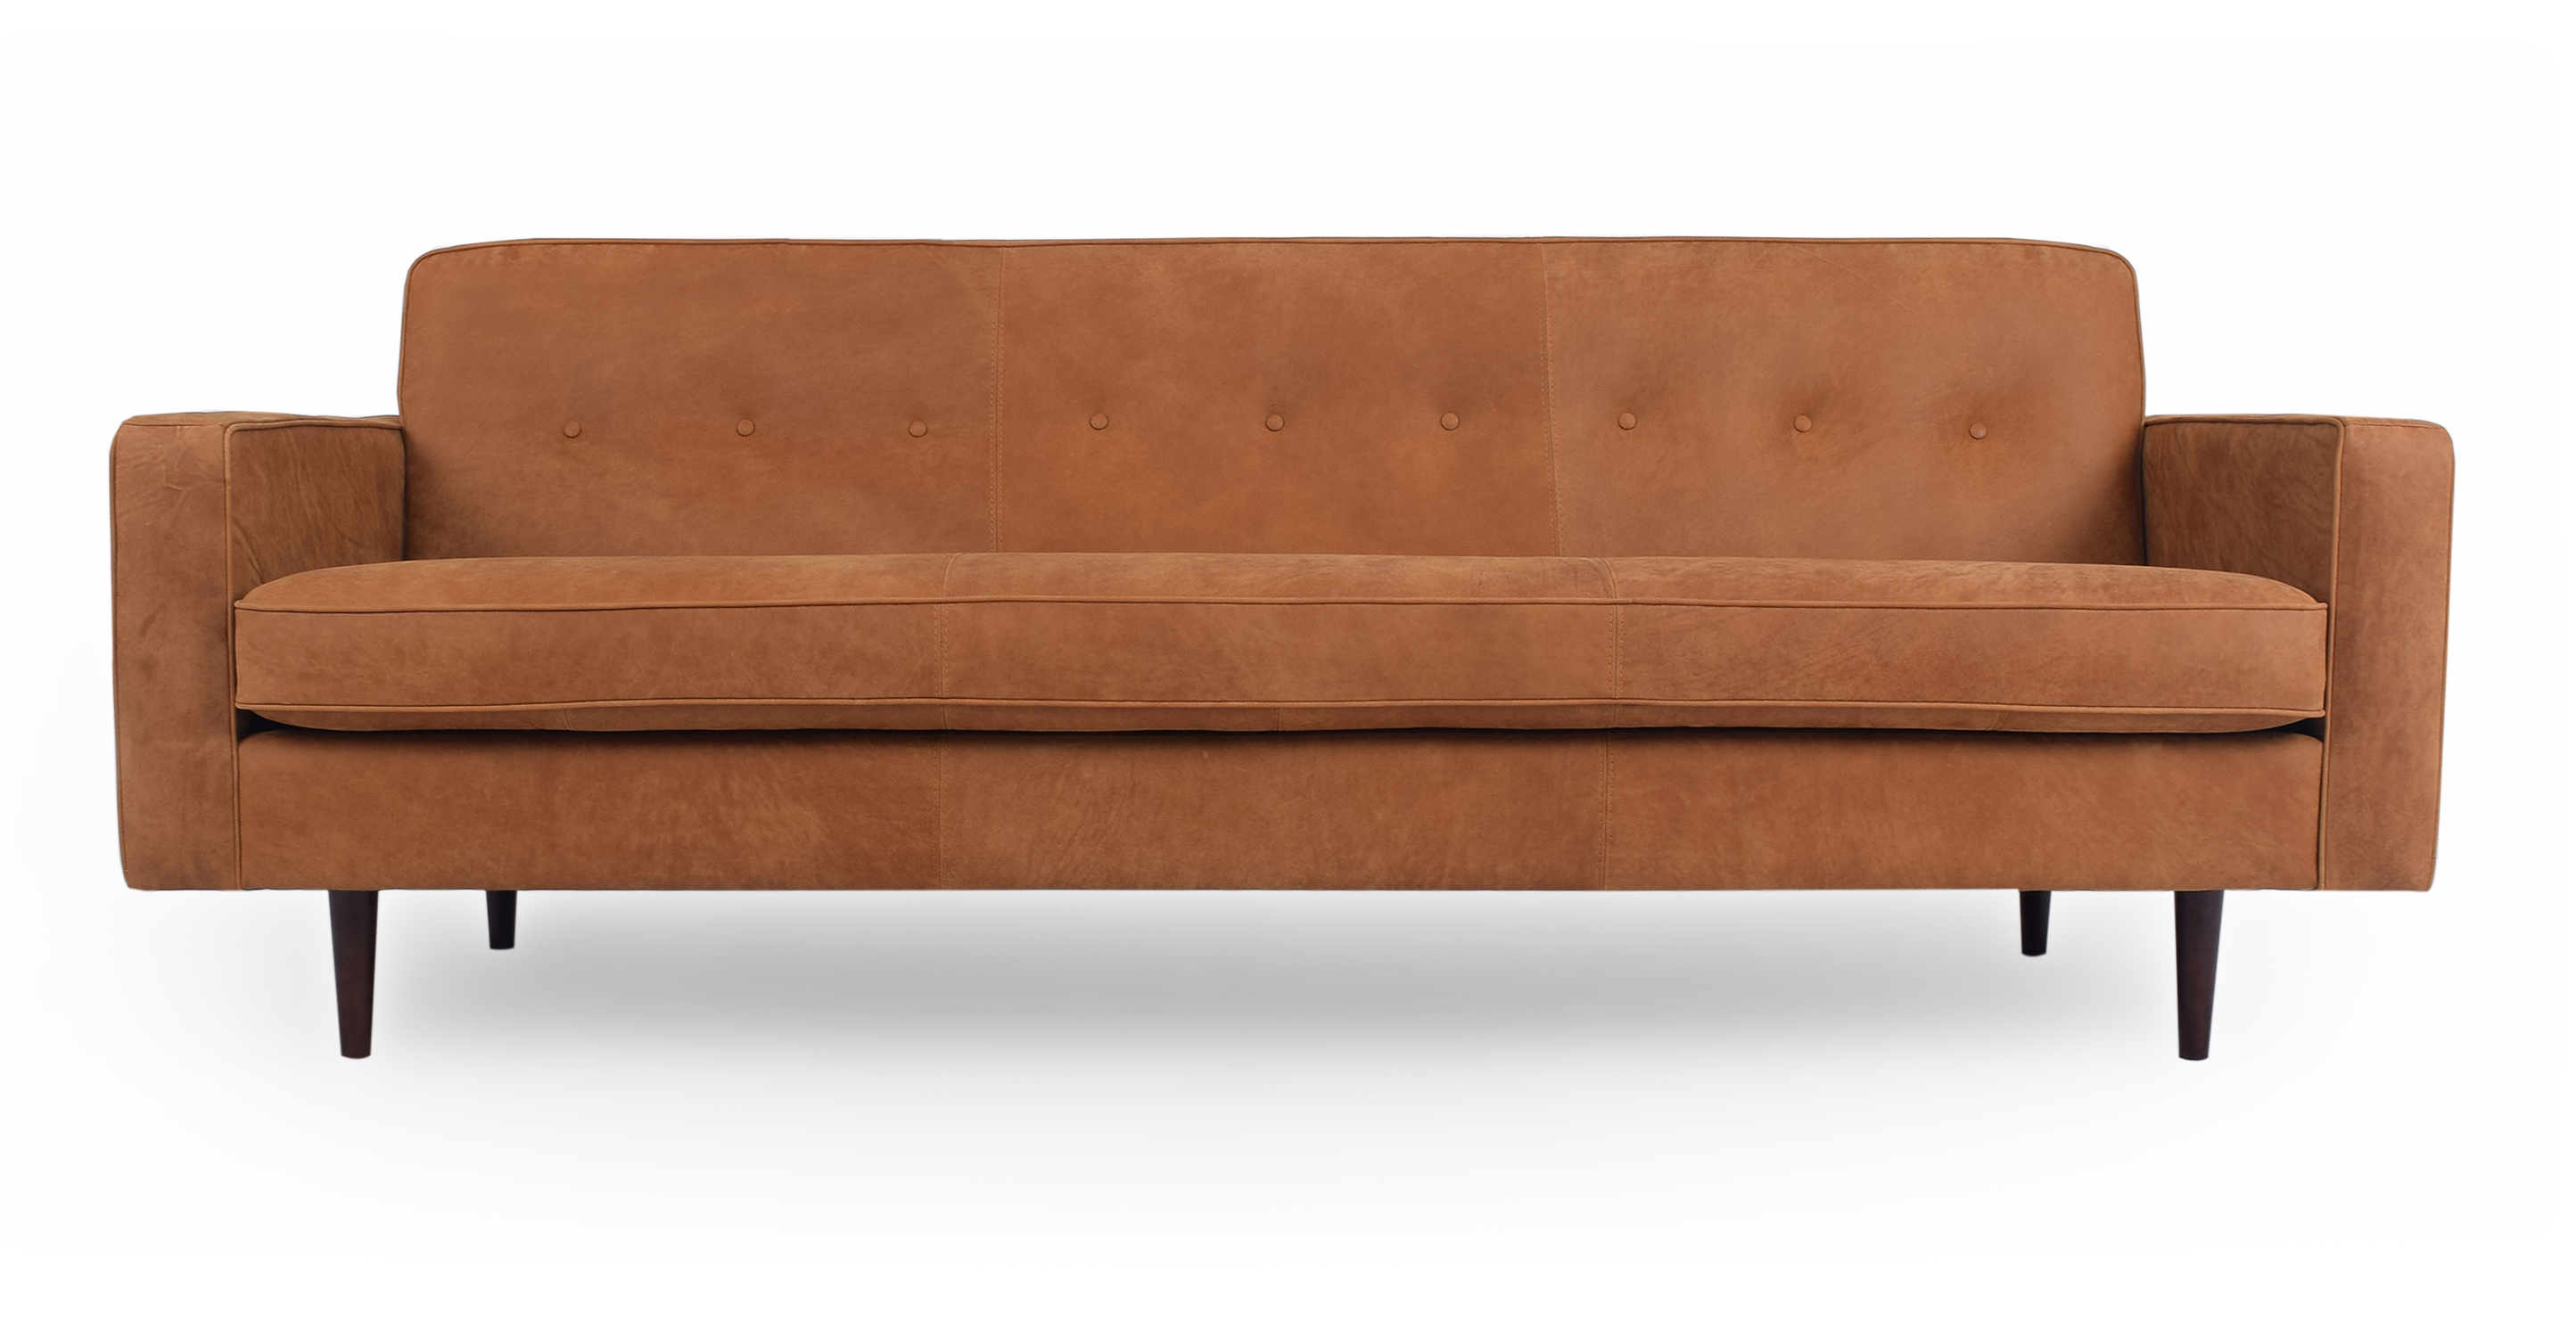 "Eleanor 85"" Leather Sofa, Cognac"